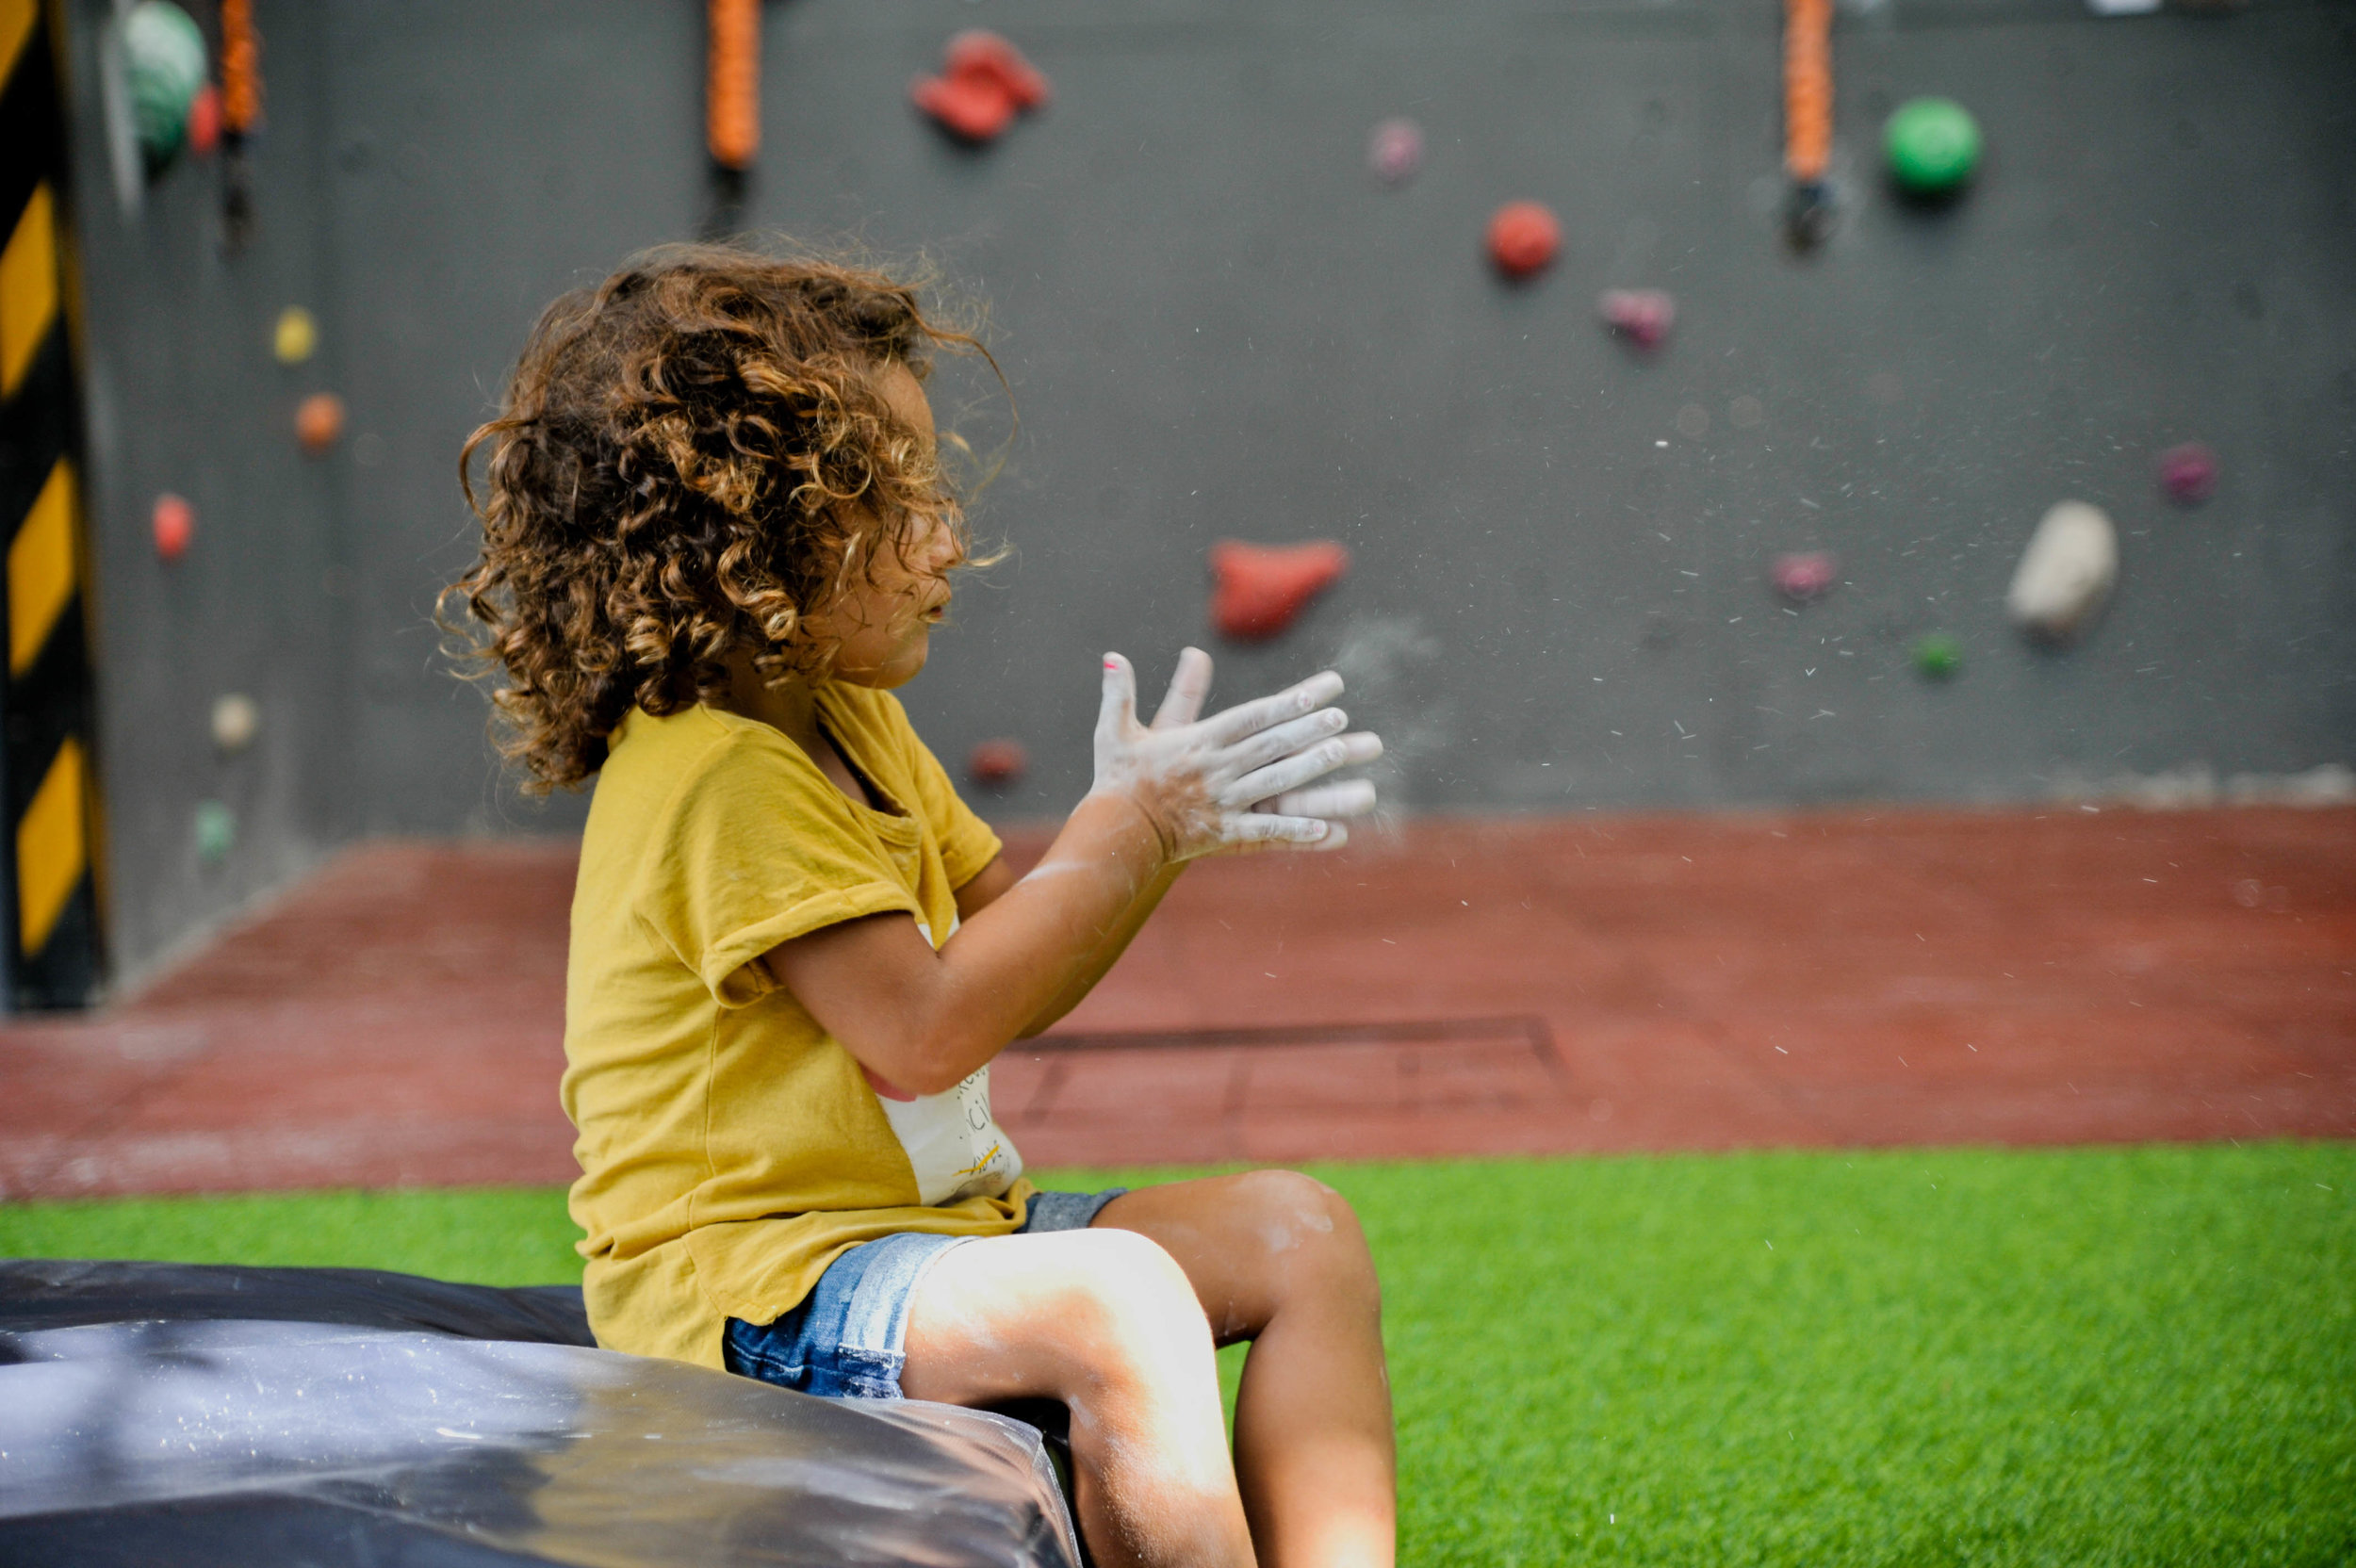 SUMMER CAMP 2019 includes: - 1. Month membership for 2 people: kid and 1 guardian/parentDates: 03 of July to 31 of july,from Tue-sunfrom 10am to 4pm.gear for kid is includedfor guardian /parent- 50k (shoes + harness)2. 4 lessons with instructors where kid's will learn basics of climbing:* Kid's yoga* safety rues & check*movements & TECHNIQUES on the wall* warm up EXERCISES*cool down* games & outdoor activities* summer climbing camp certificate of activity3. closing climbing party with photographer, presents and a lot of fun